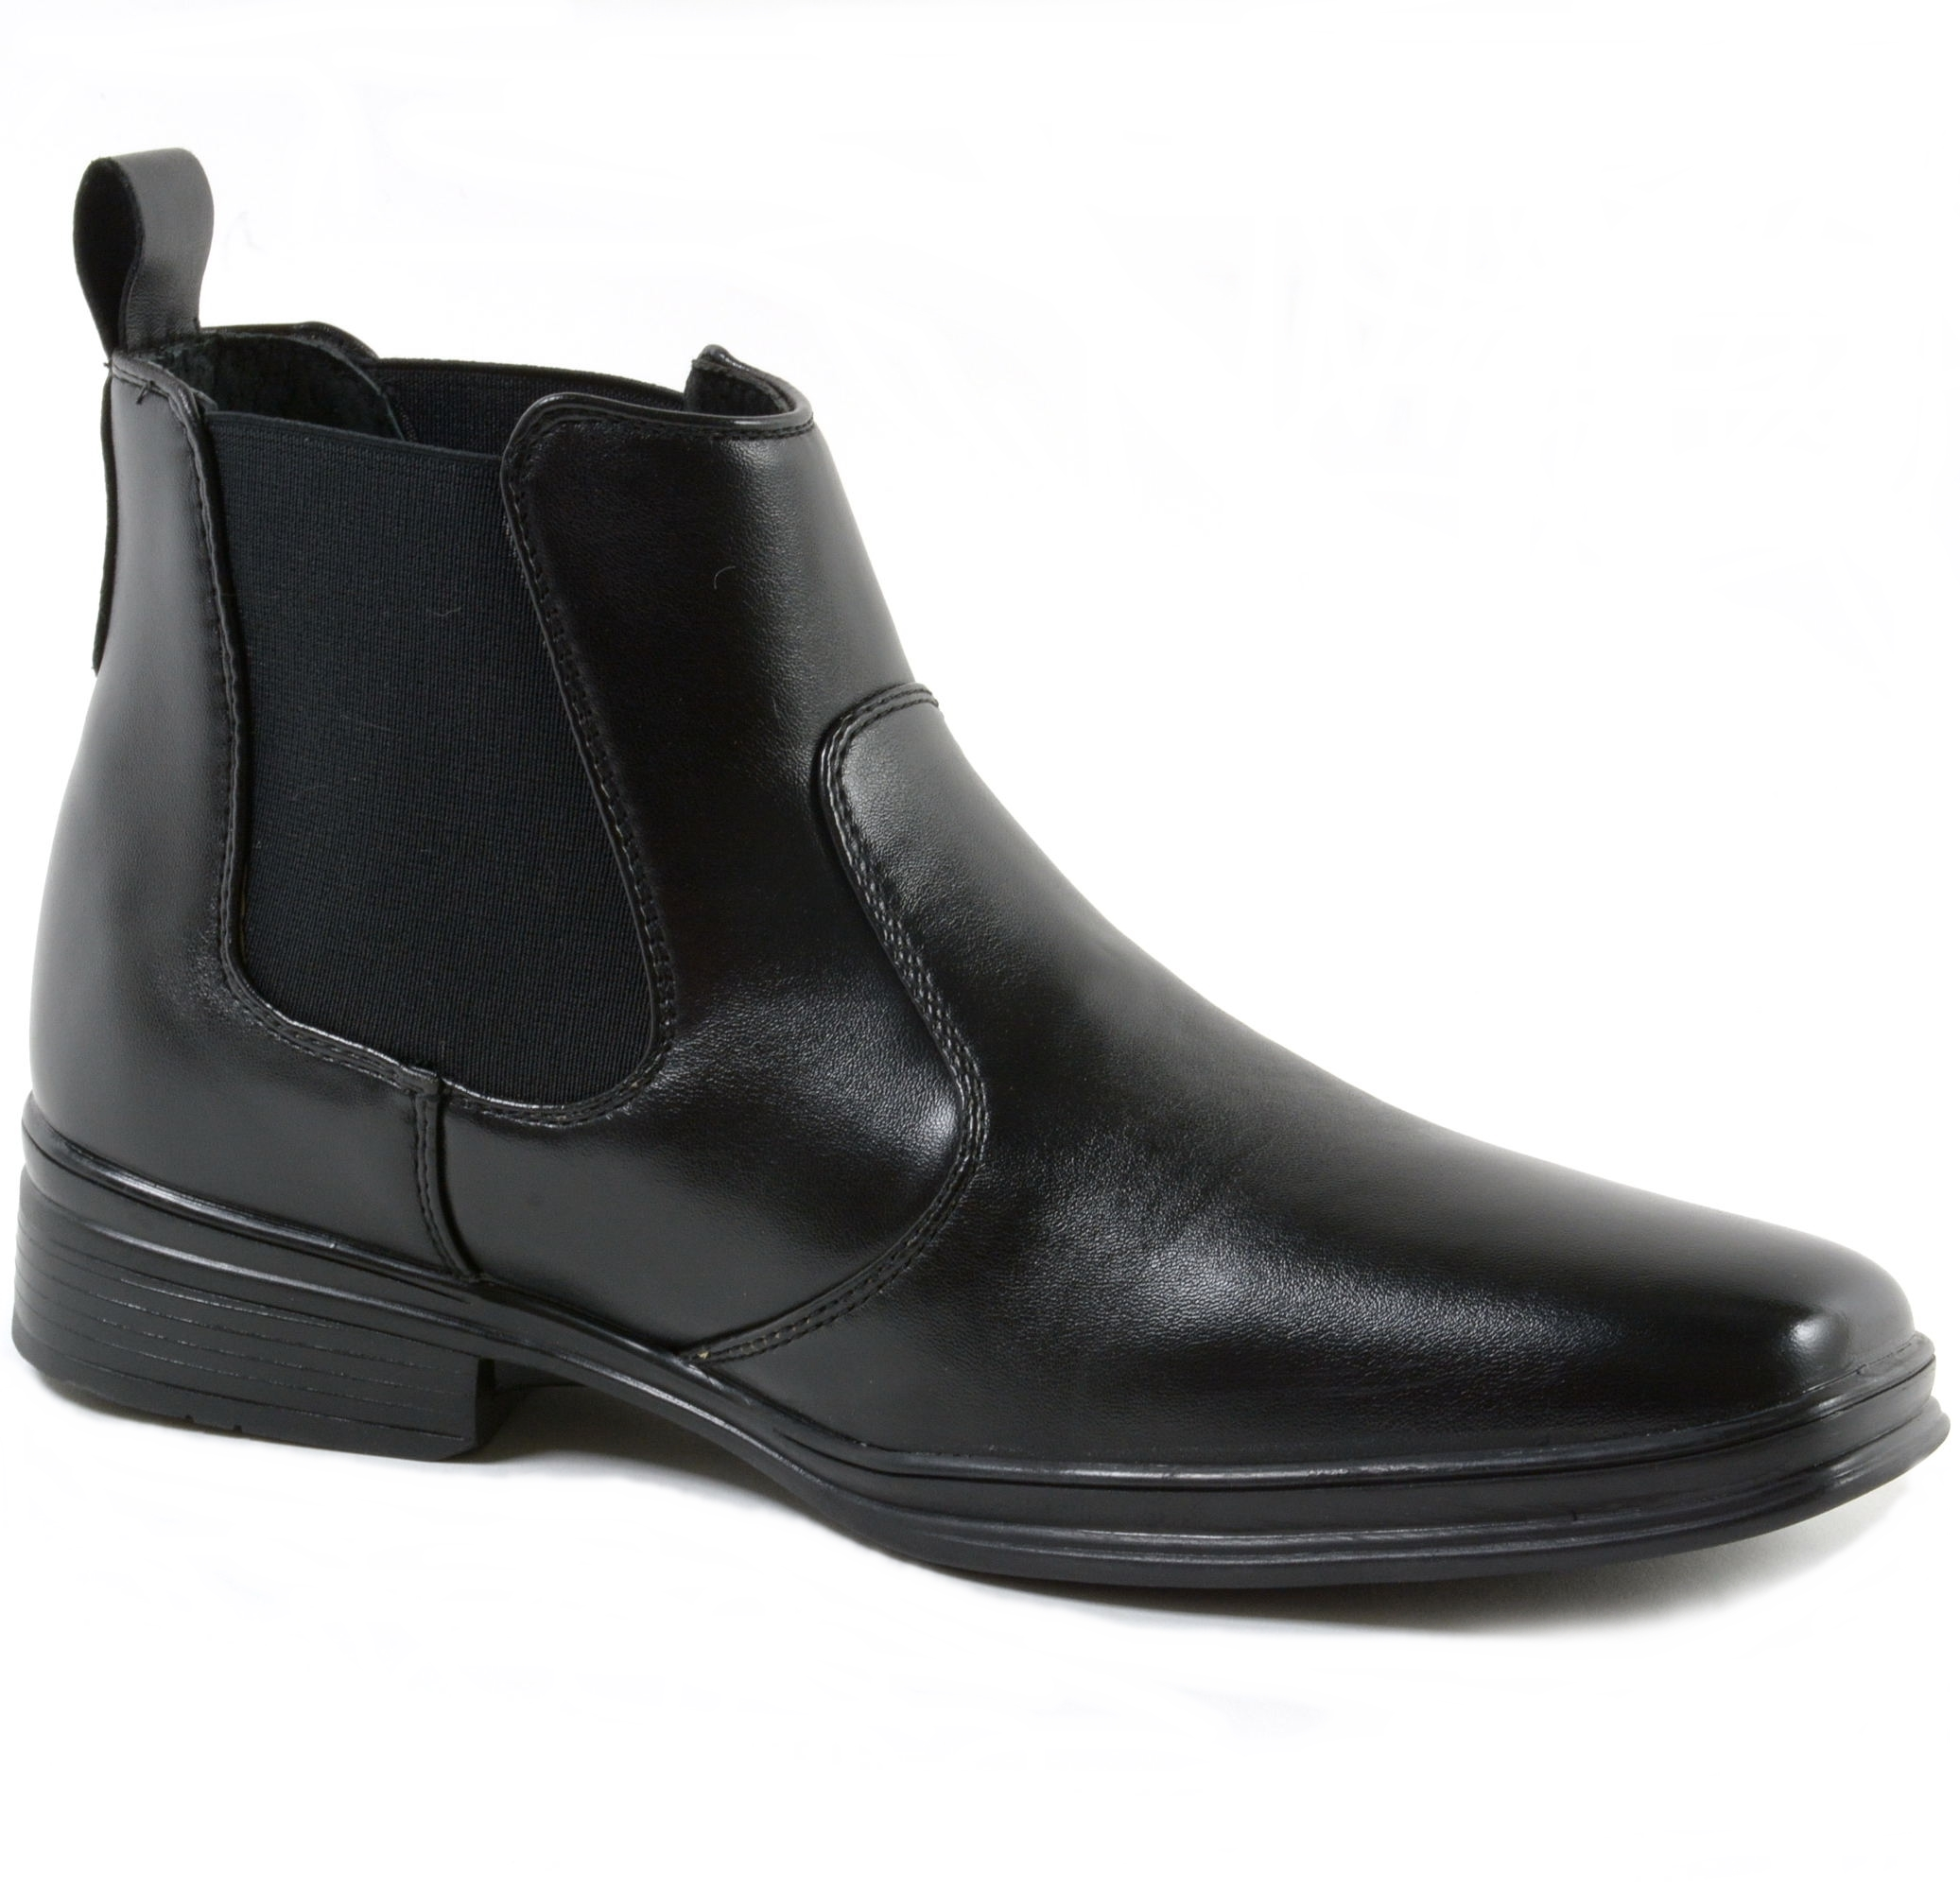 mens dress boots alpine-swiss-sion-men-039-s-chelsea-boots- urcbpac